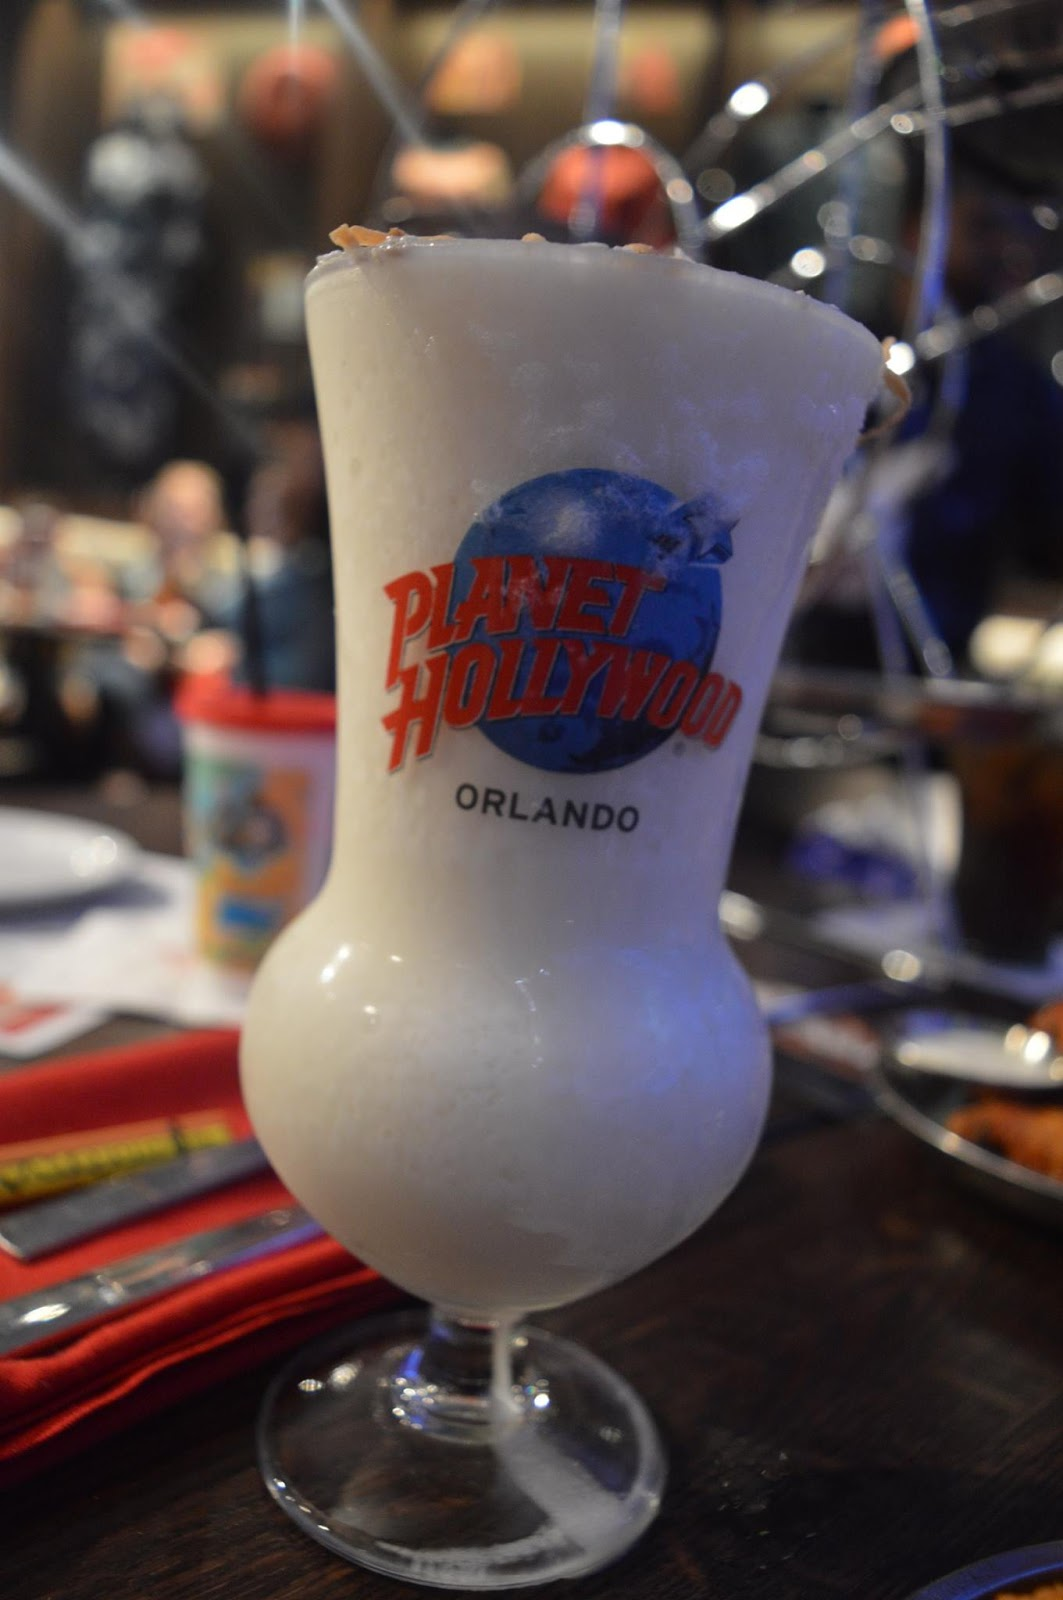 11 Things to do with Kids at Disney Springs Orlando, Florida  - planet hollywood cocktail